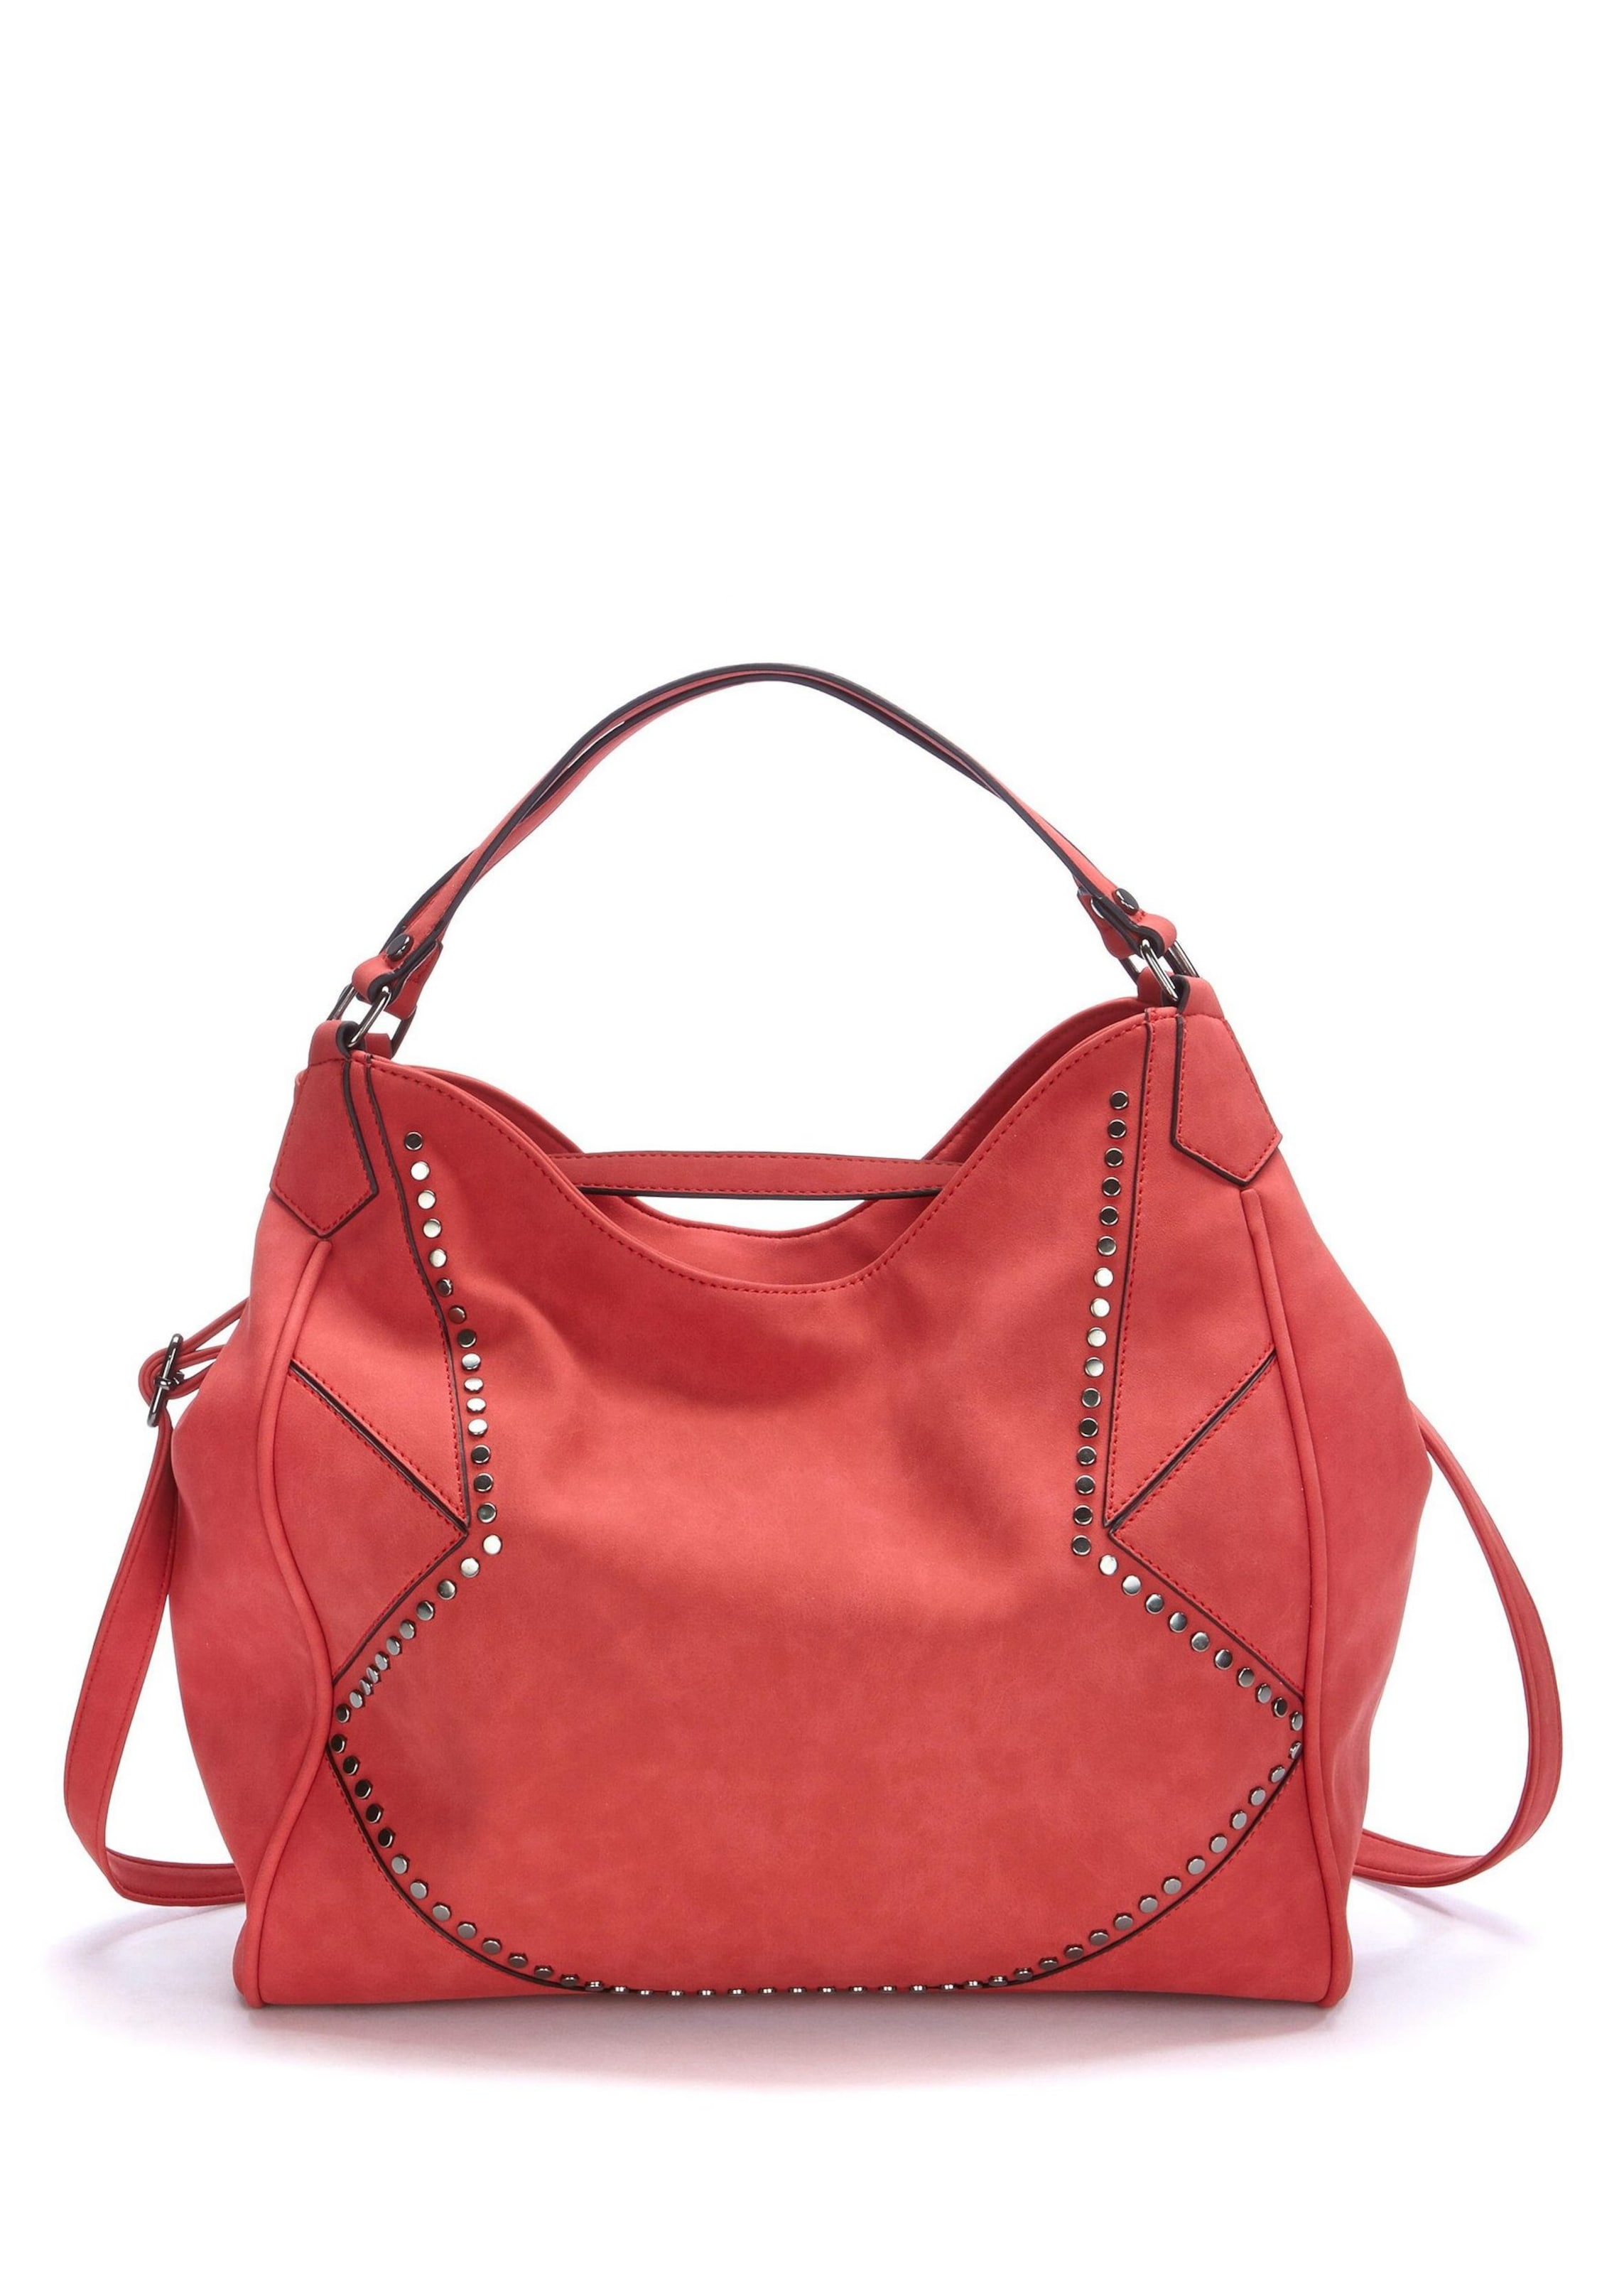 Rot Rot Schultertasche Lascana Lascana Lascana In Lascana Schultertasche Schultertasche In Rot Schultertasche In Nnvm8wOP0y